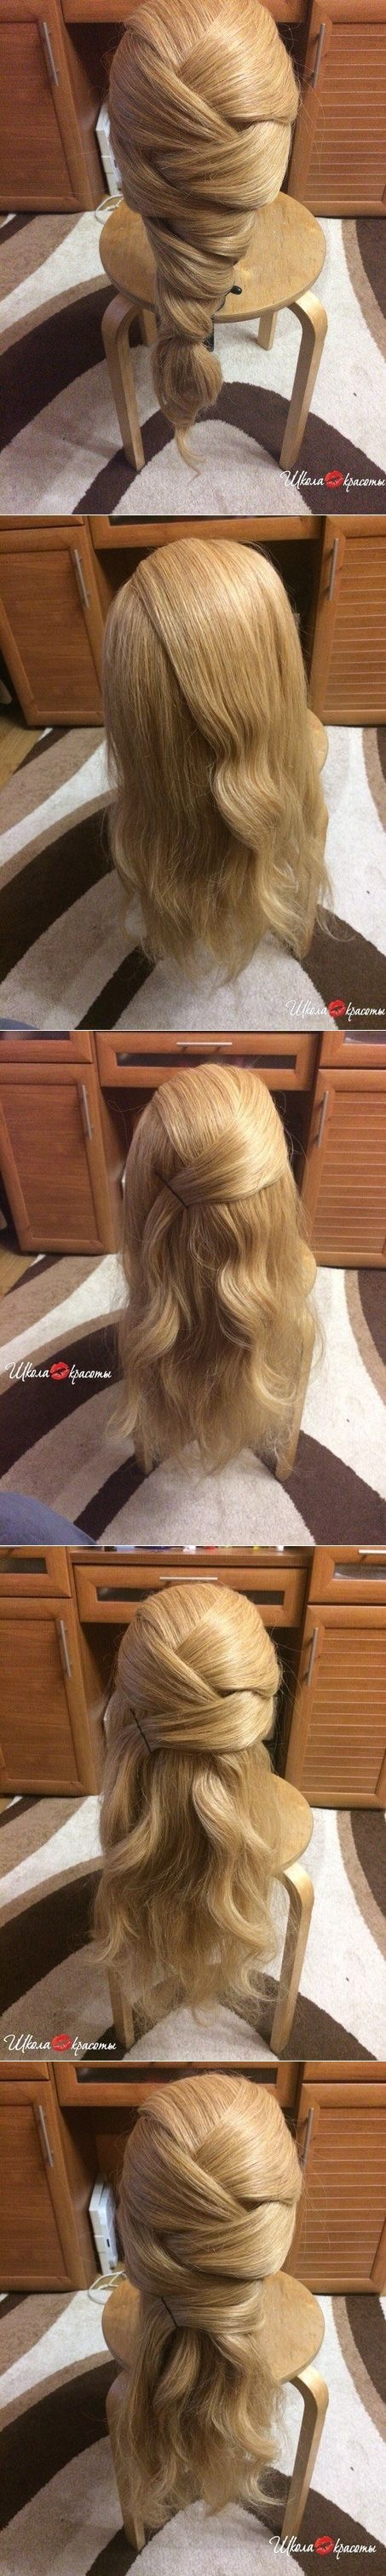 Pin by bebe xan on hijab style pinterest hair style